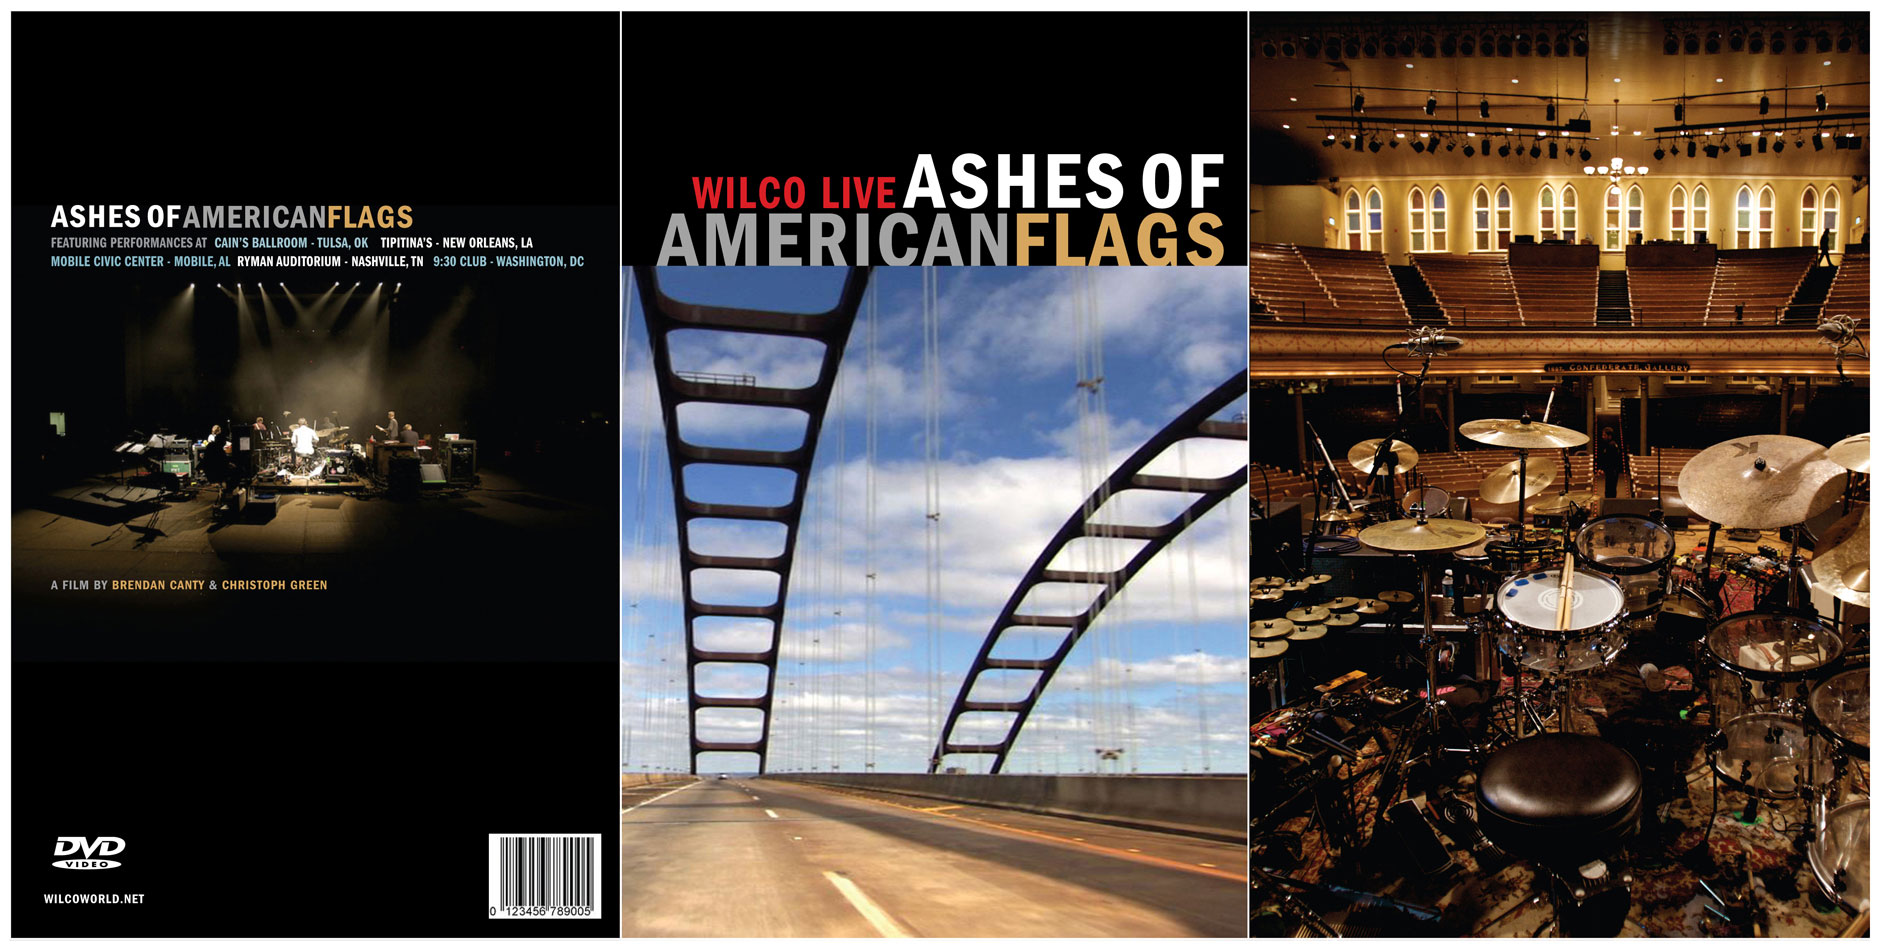 ASHES-COVER-AND-BACK2-DUP.jpg